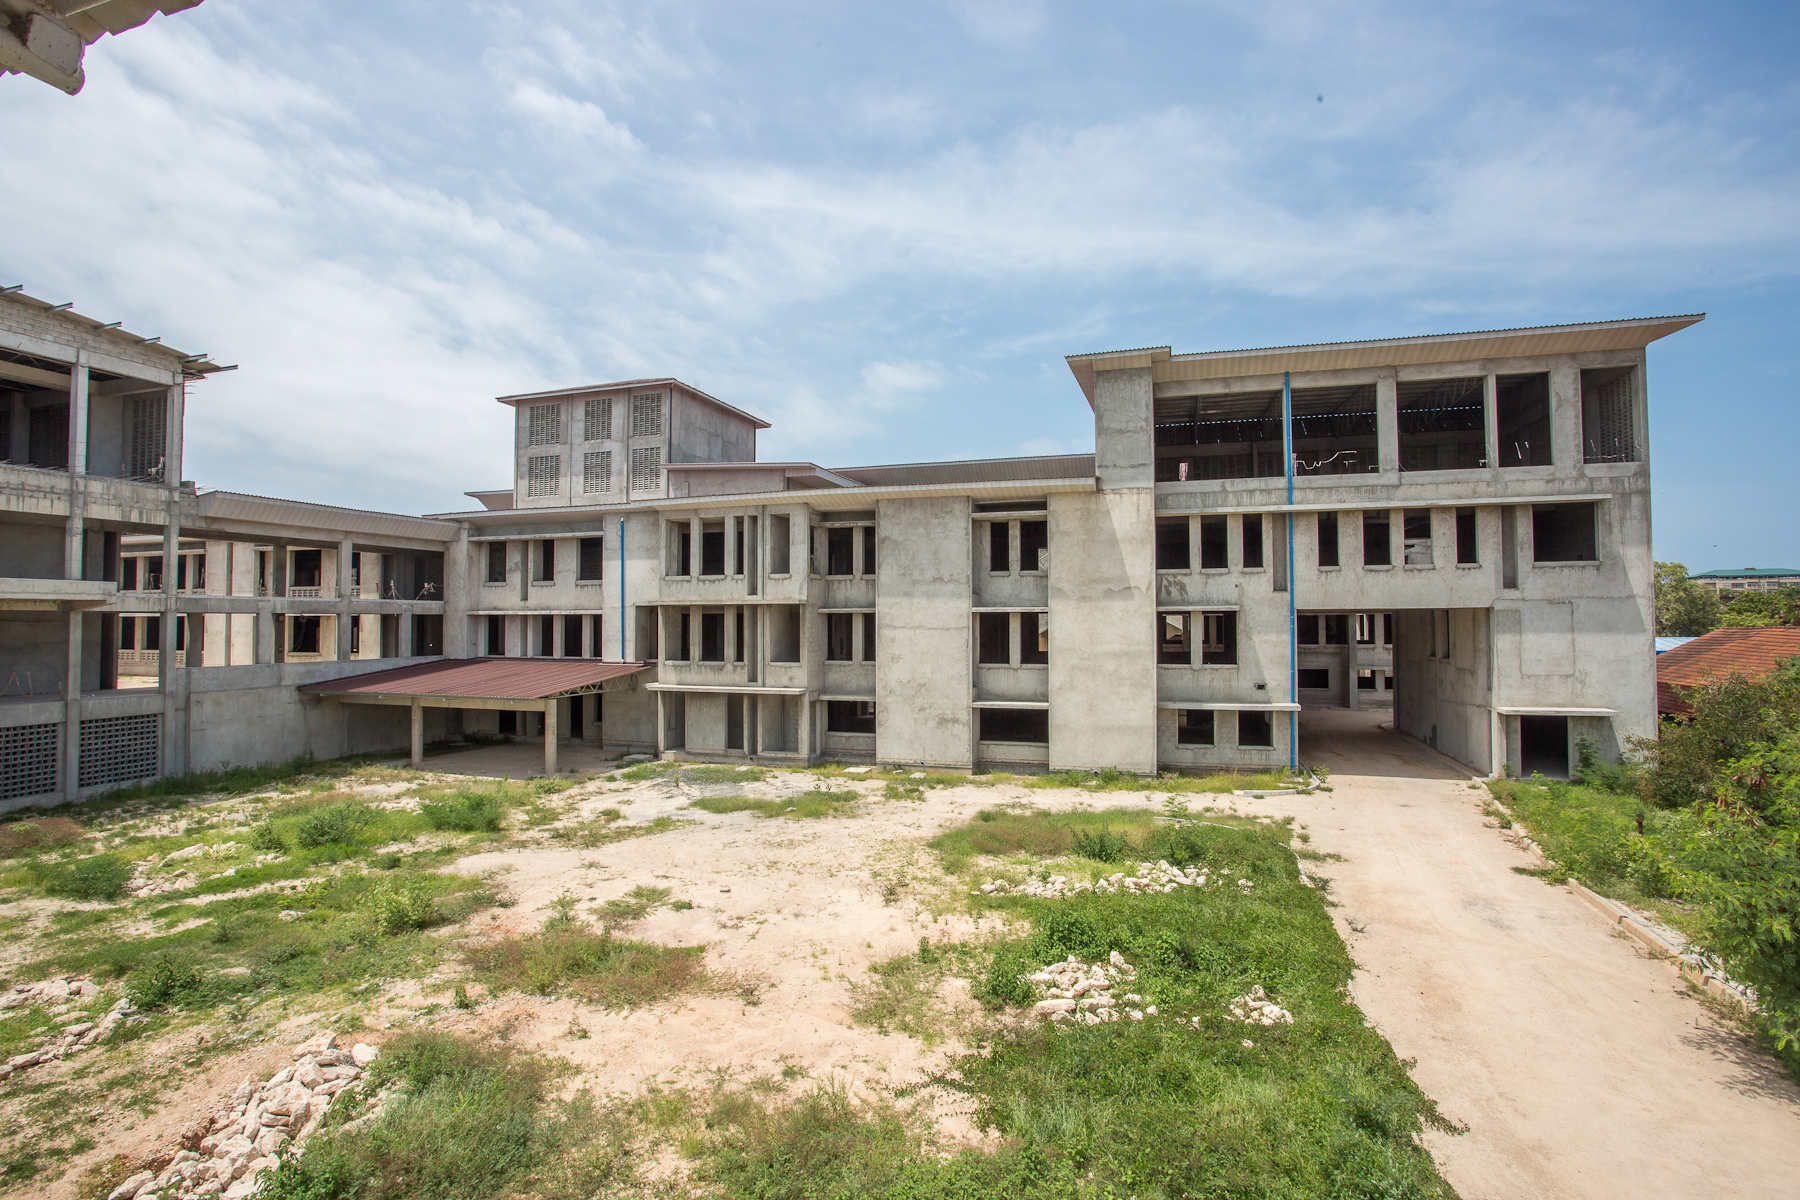 CCBRT Maternity and Newborn Hospital, due to open in 2019. Photo credit: Sala Lewis